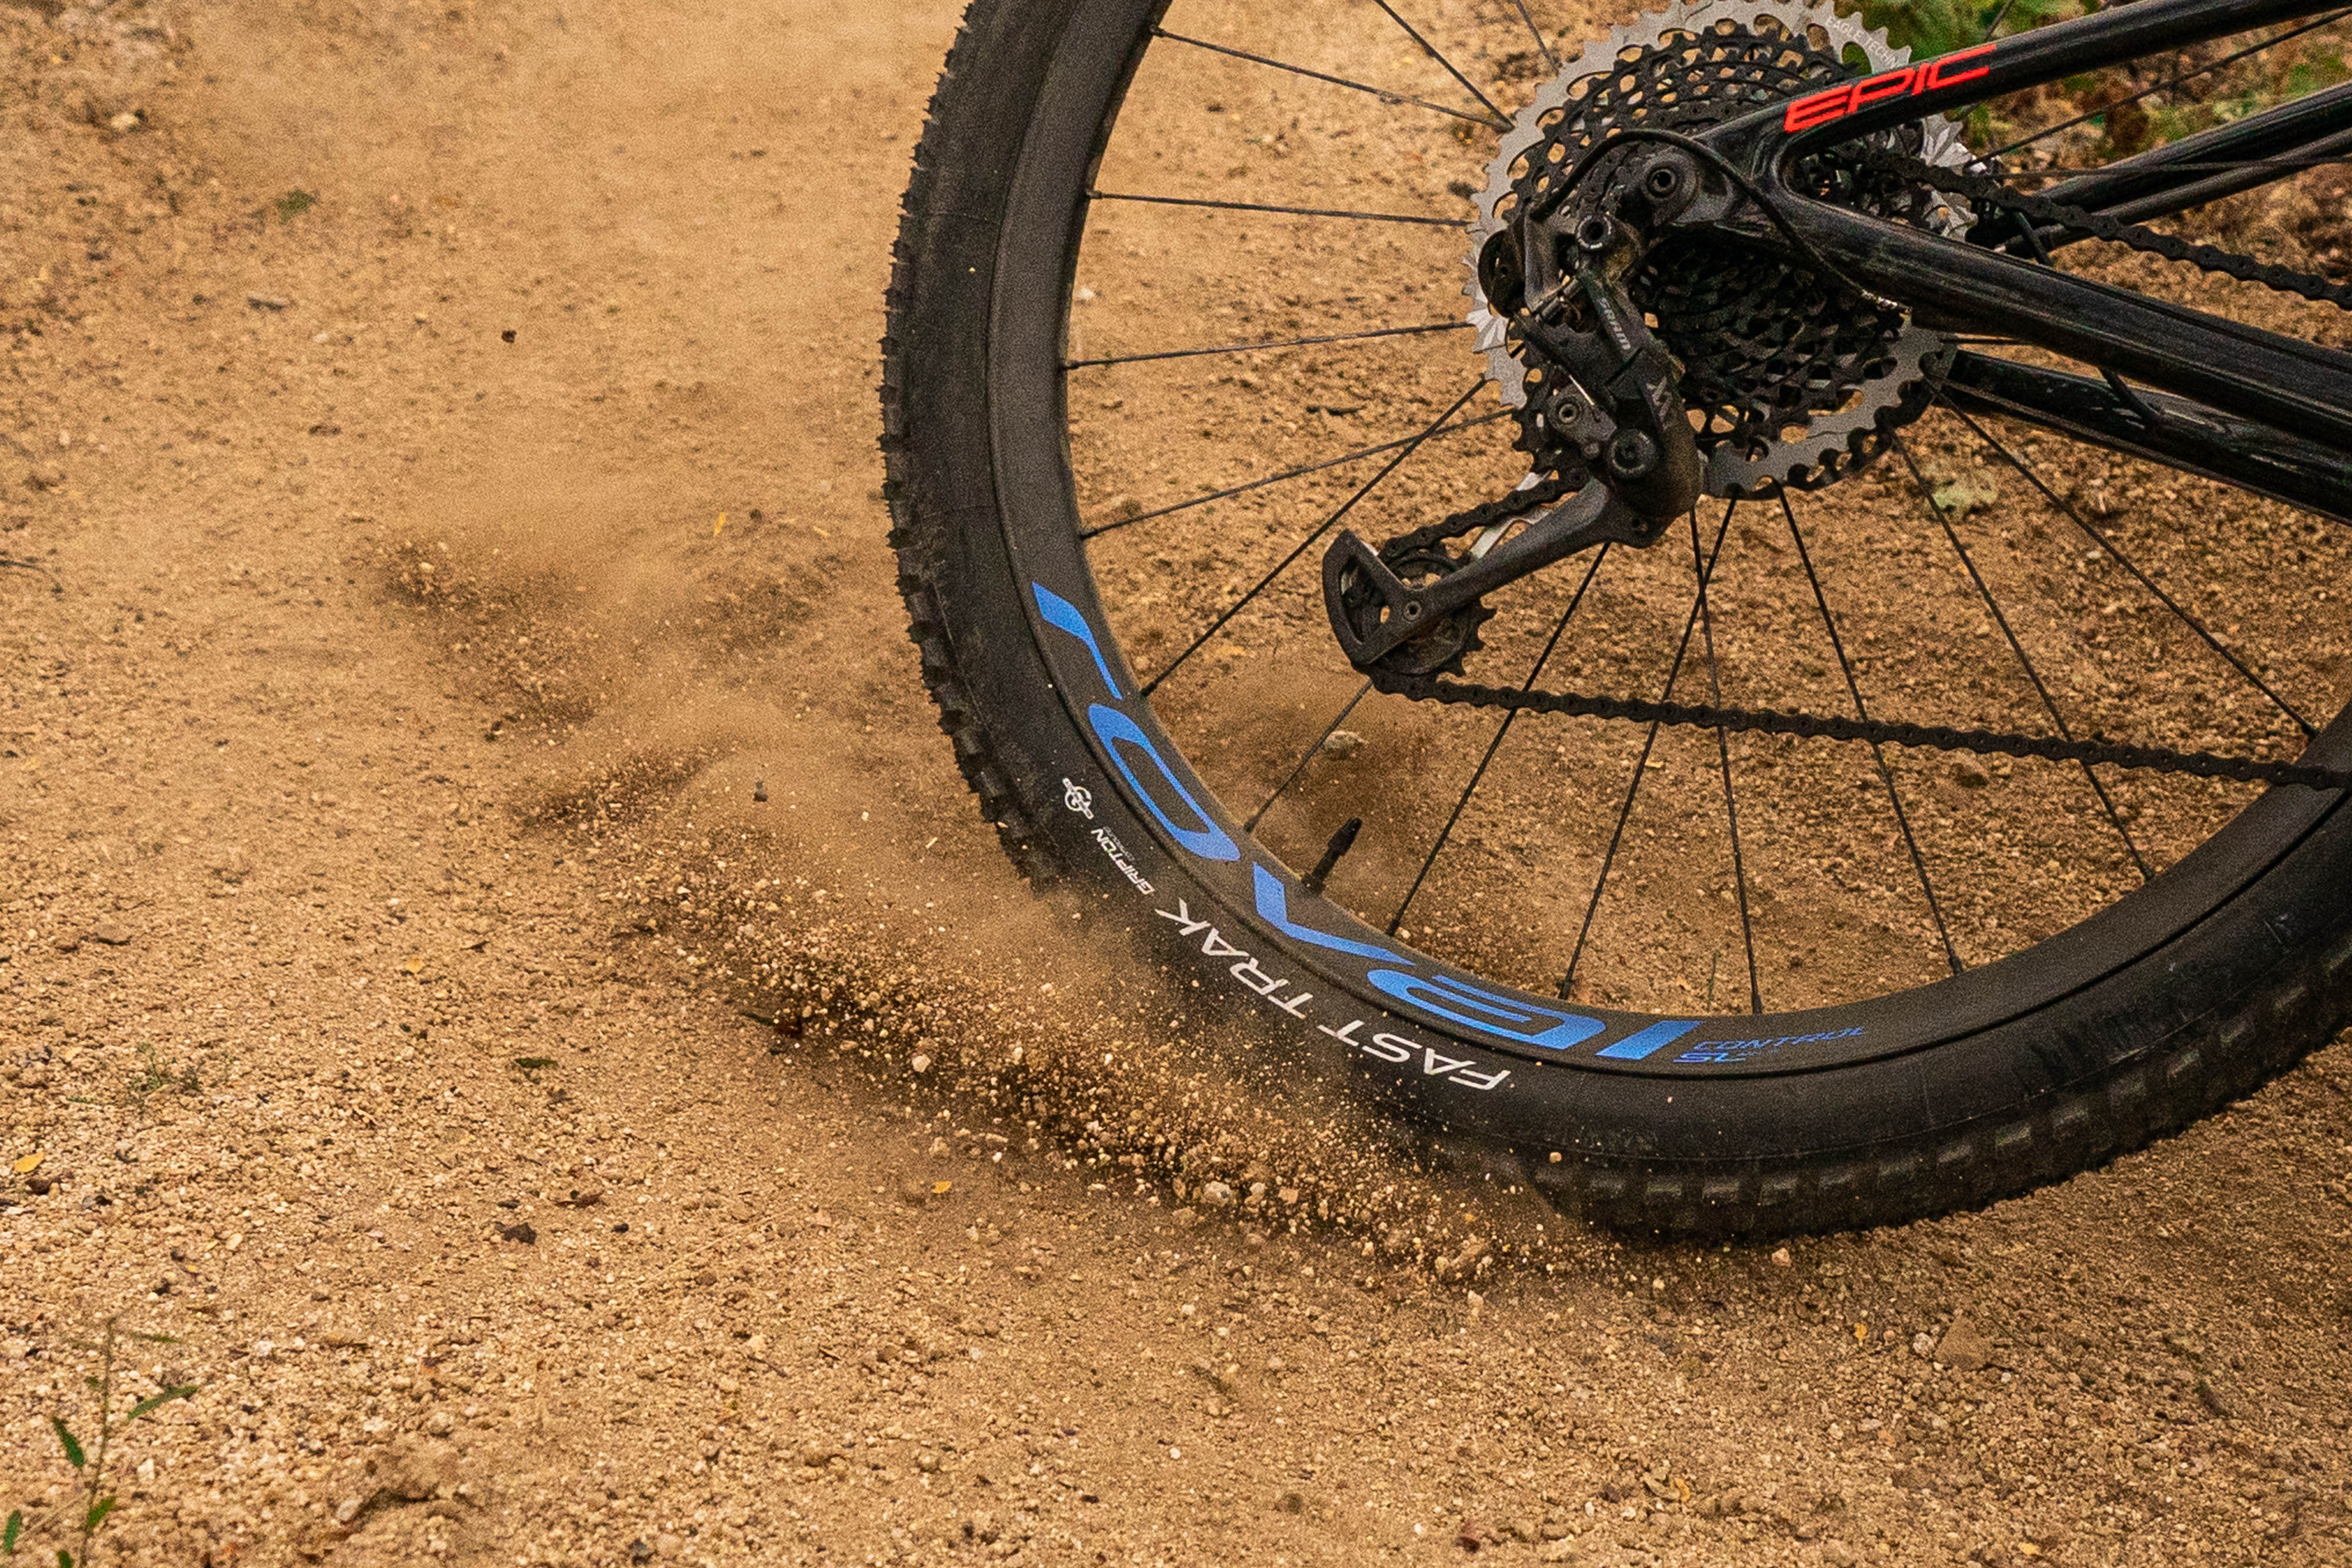 The Roval Control SL's are up to speed for the demands of modern XC riding.